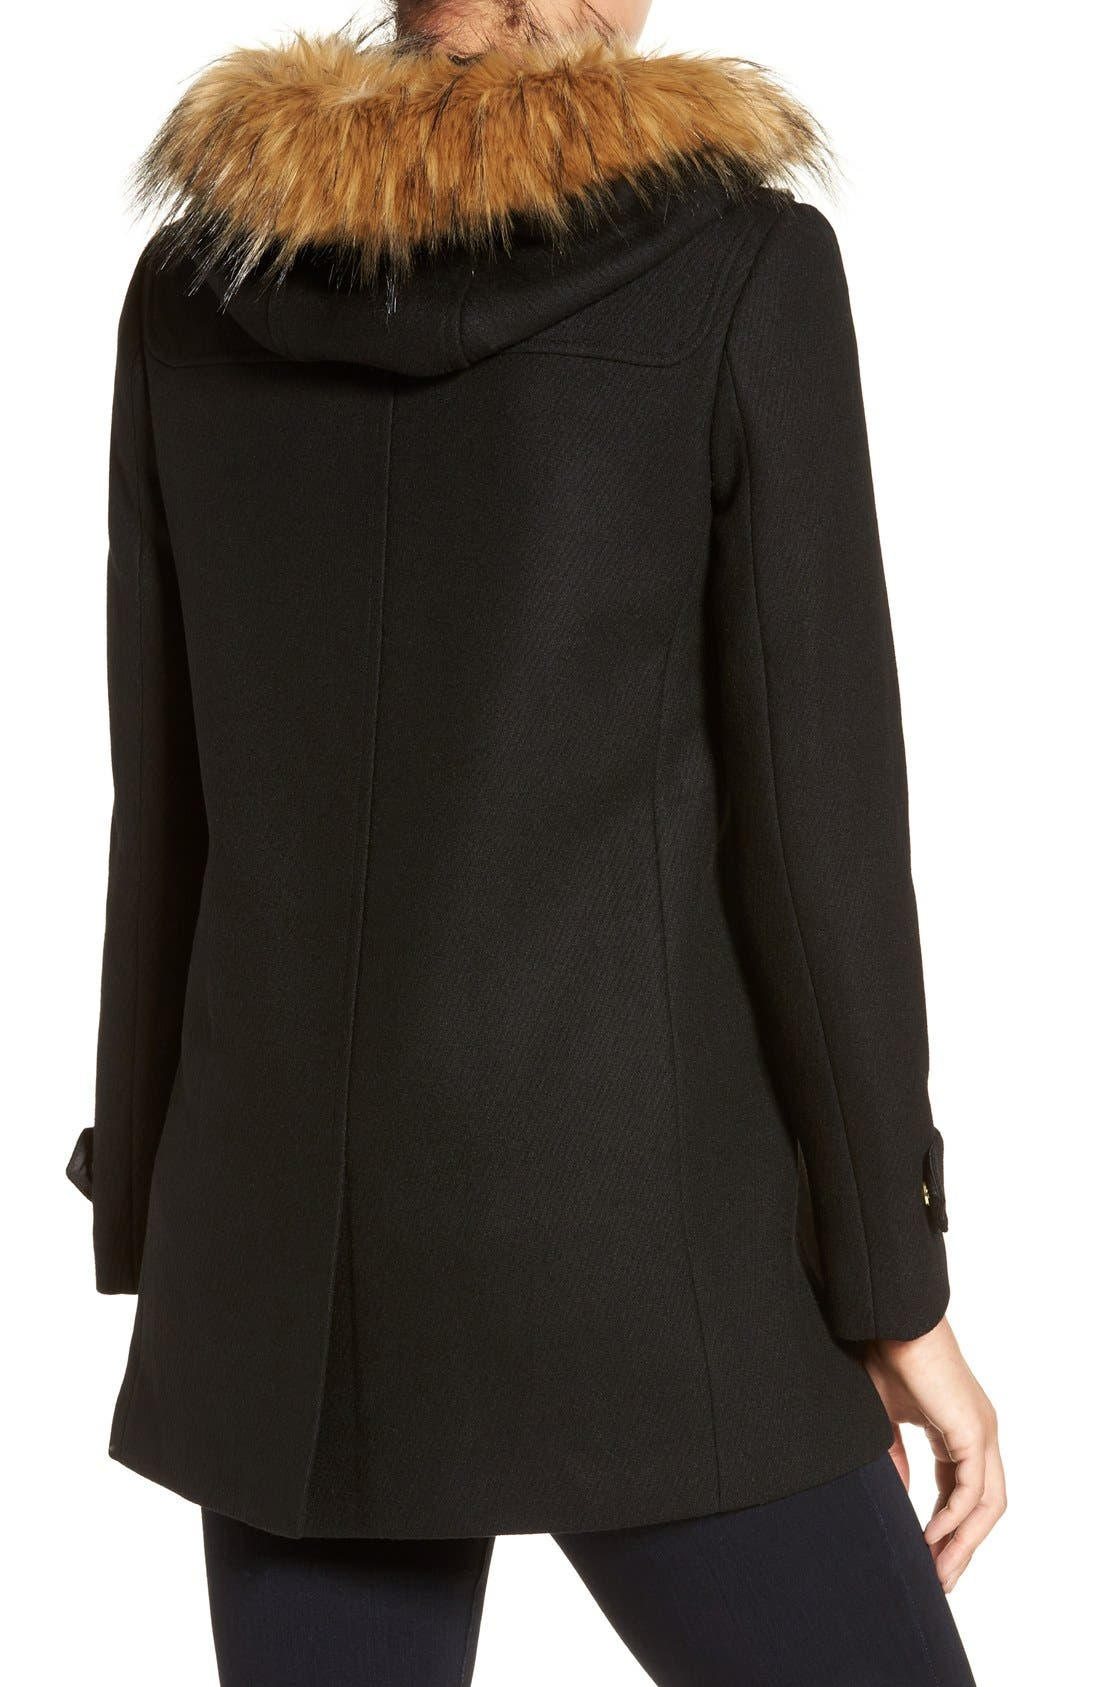 Cole Haan Hooded Duffle Coat with Faux Fur Trim,                             Alternate thumbnail 2, color,                             BLACK